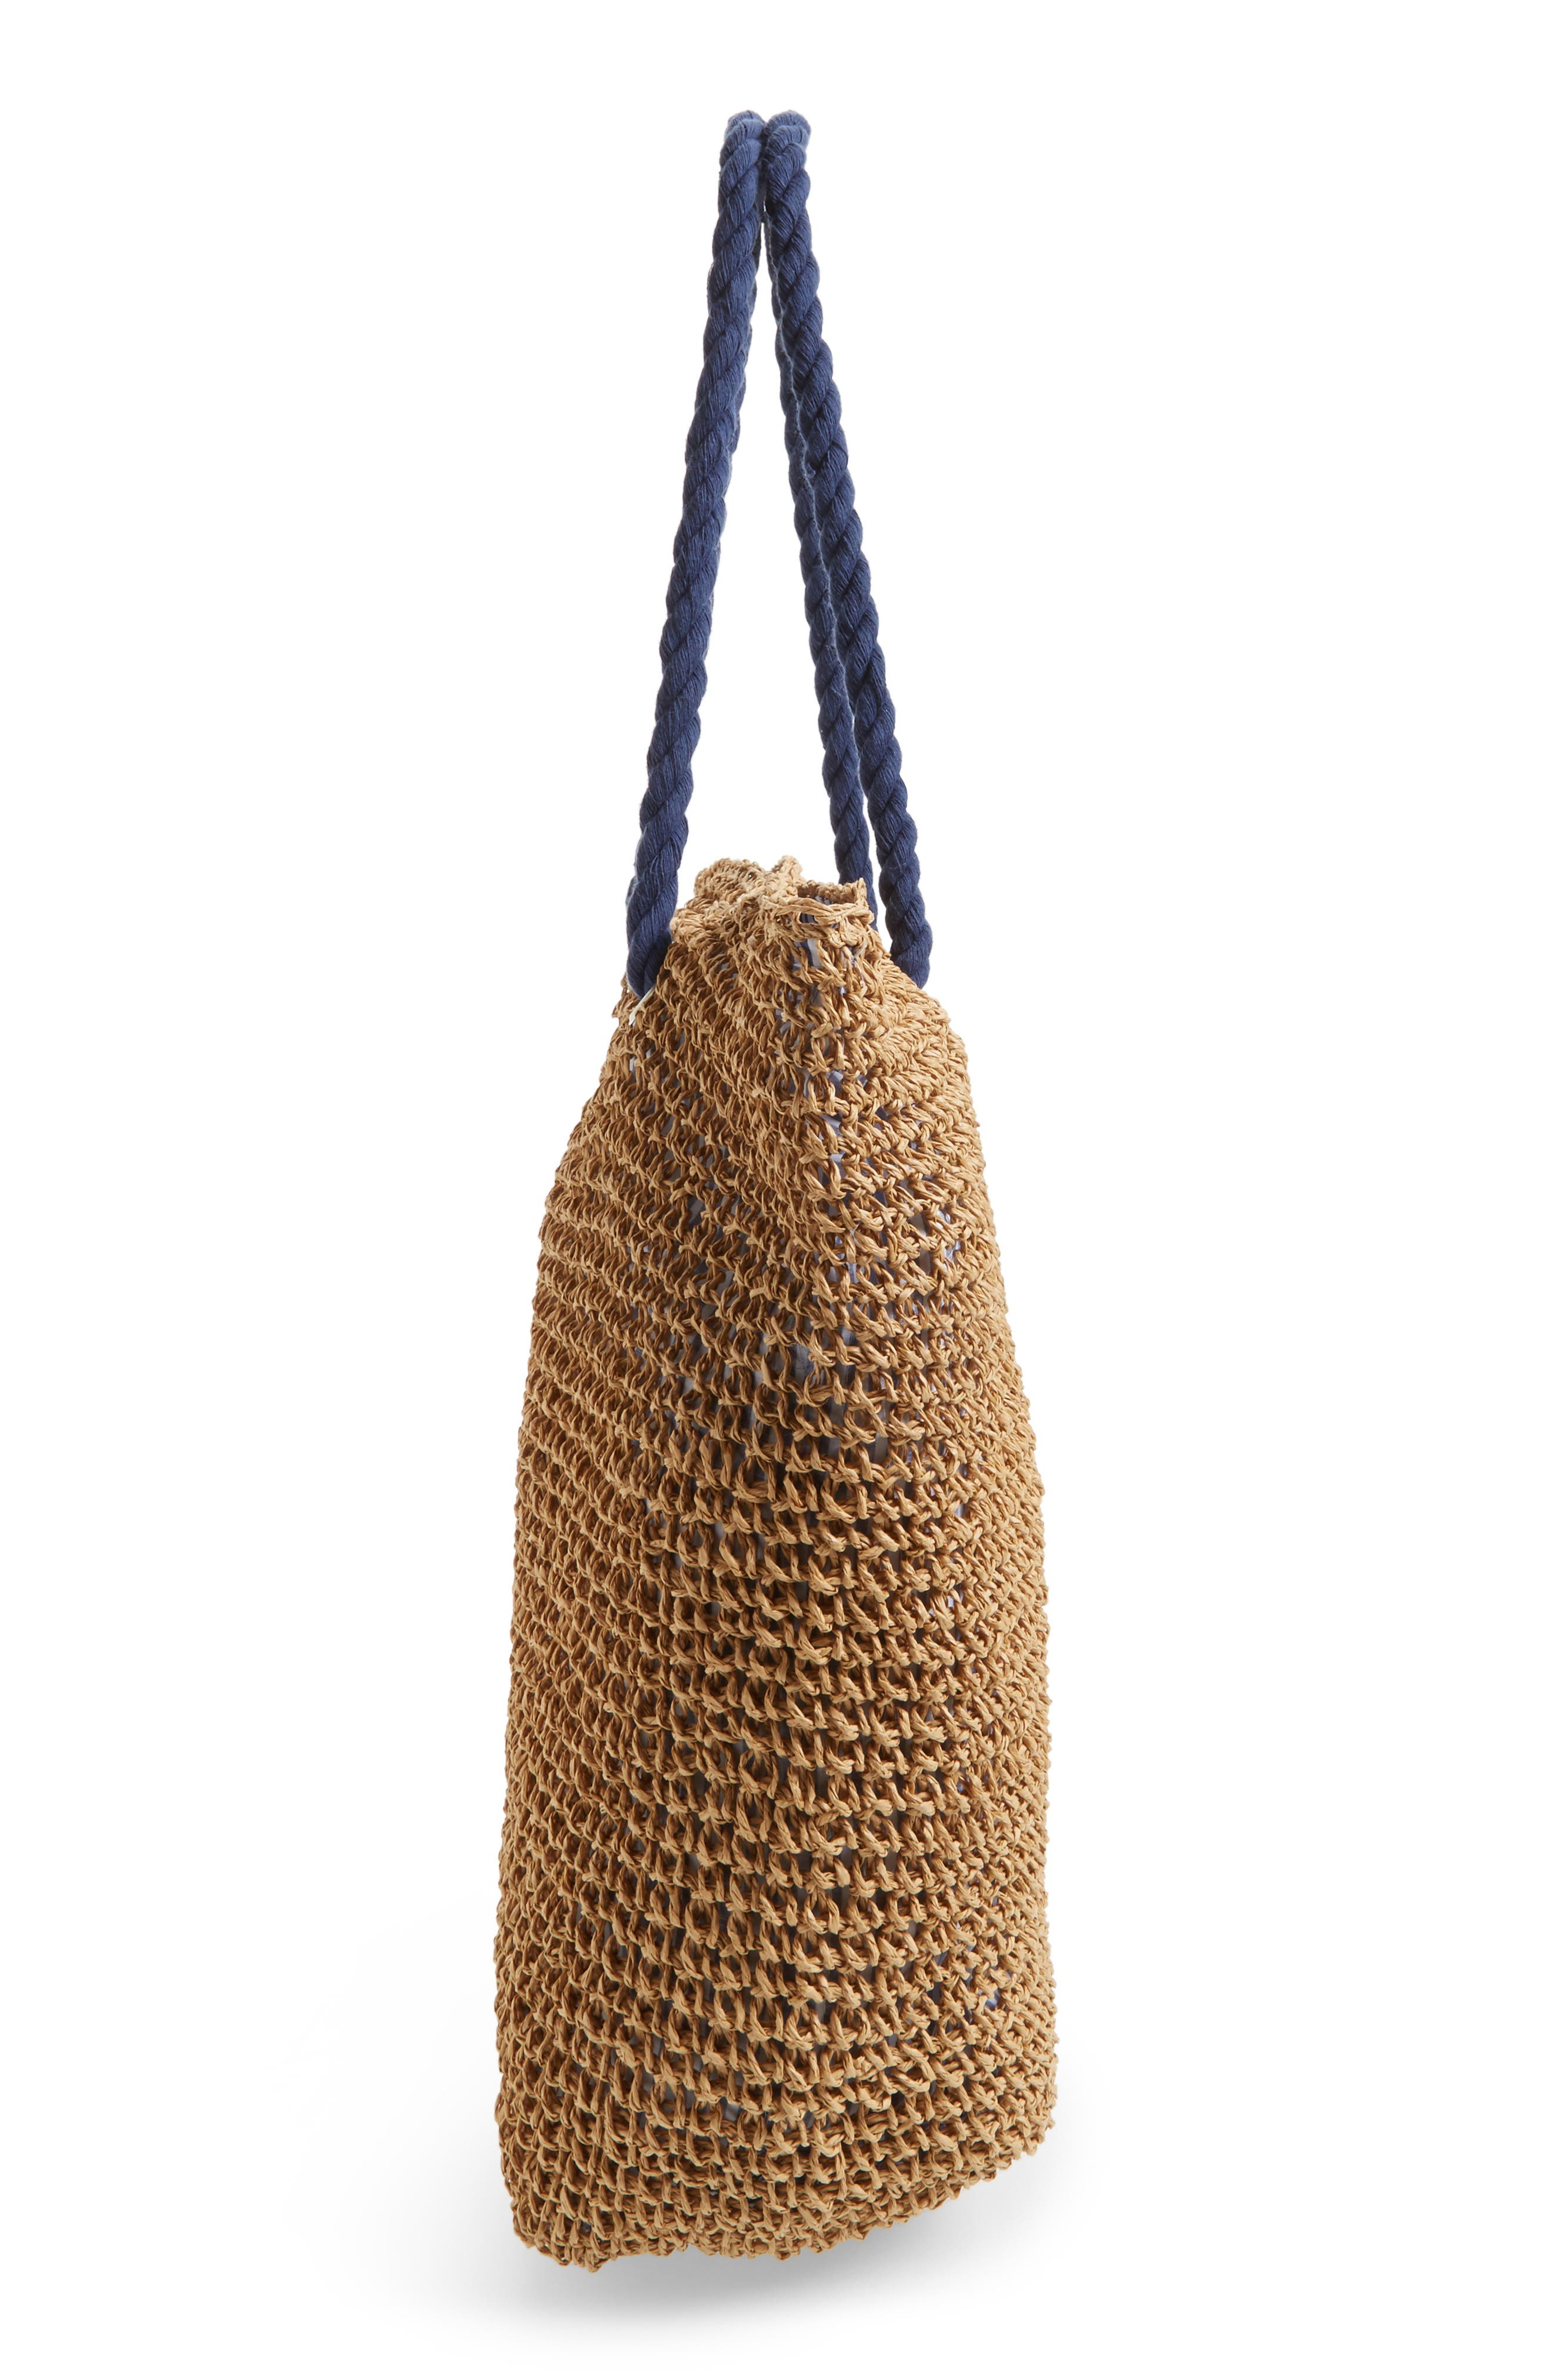 Rope & Straw Tote,                             Alternate thumbnail 5, color,                             200